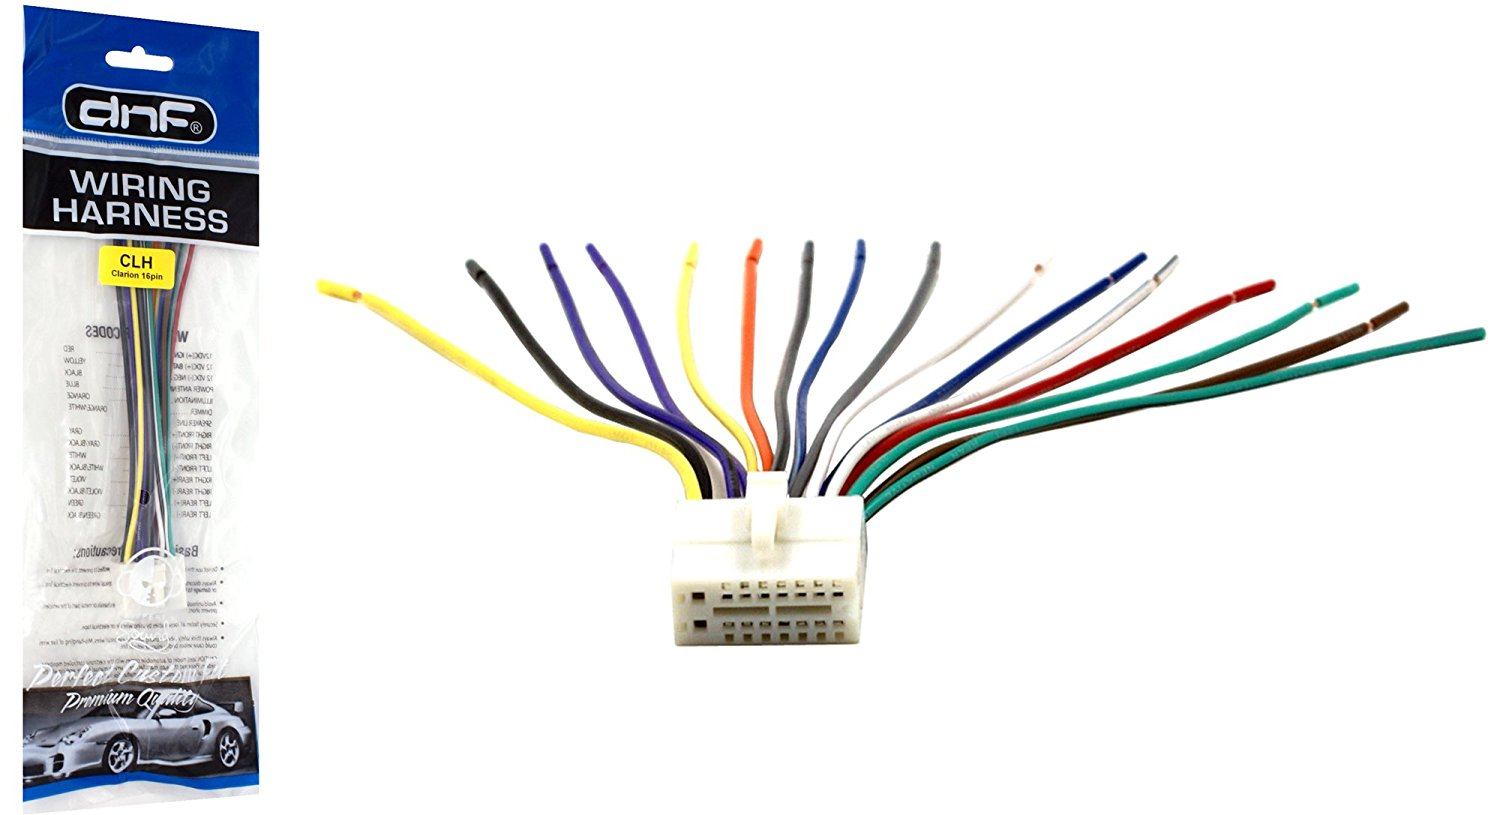 hight resolution of dnf clarion wiring harness dxz265mp dxz275mp dxz365mp dxz375 mpdnf clarion wiring harness dxz265mp dxz275mp dxz365mp dxz375